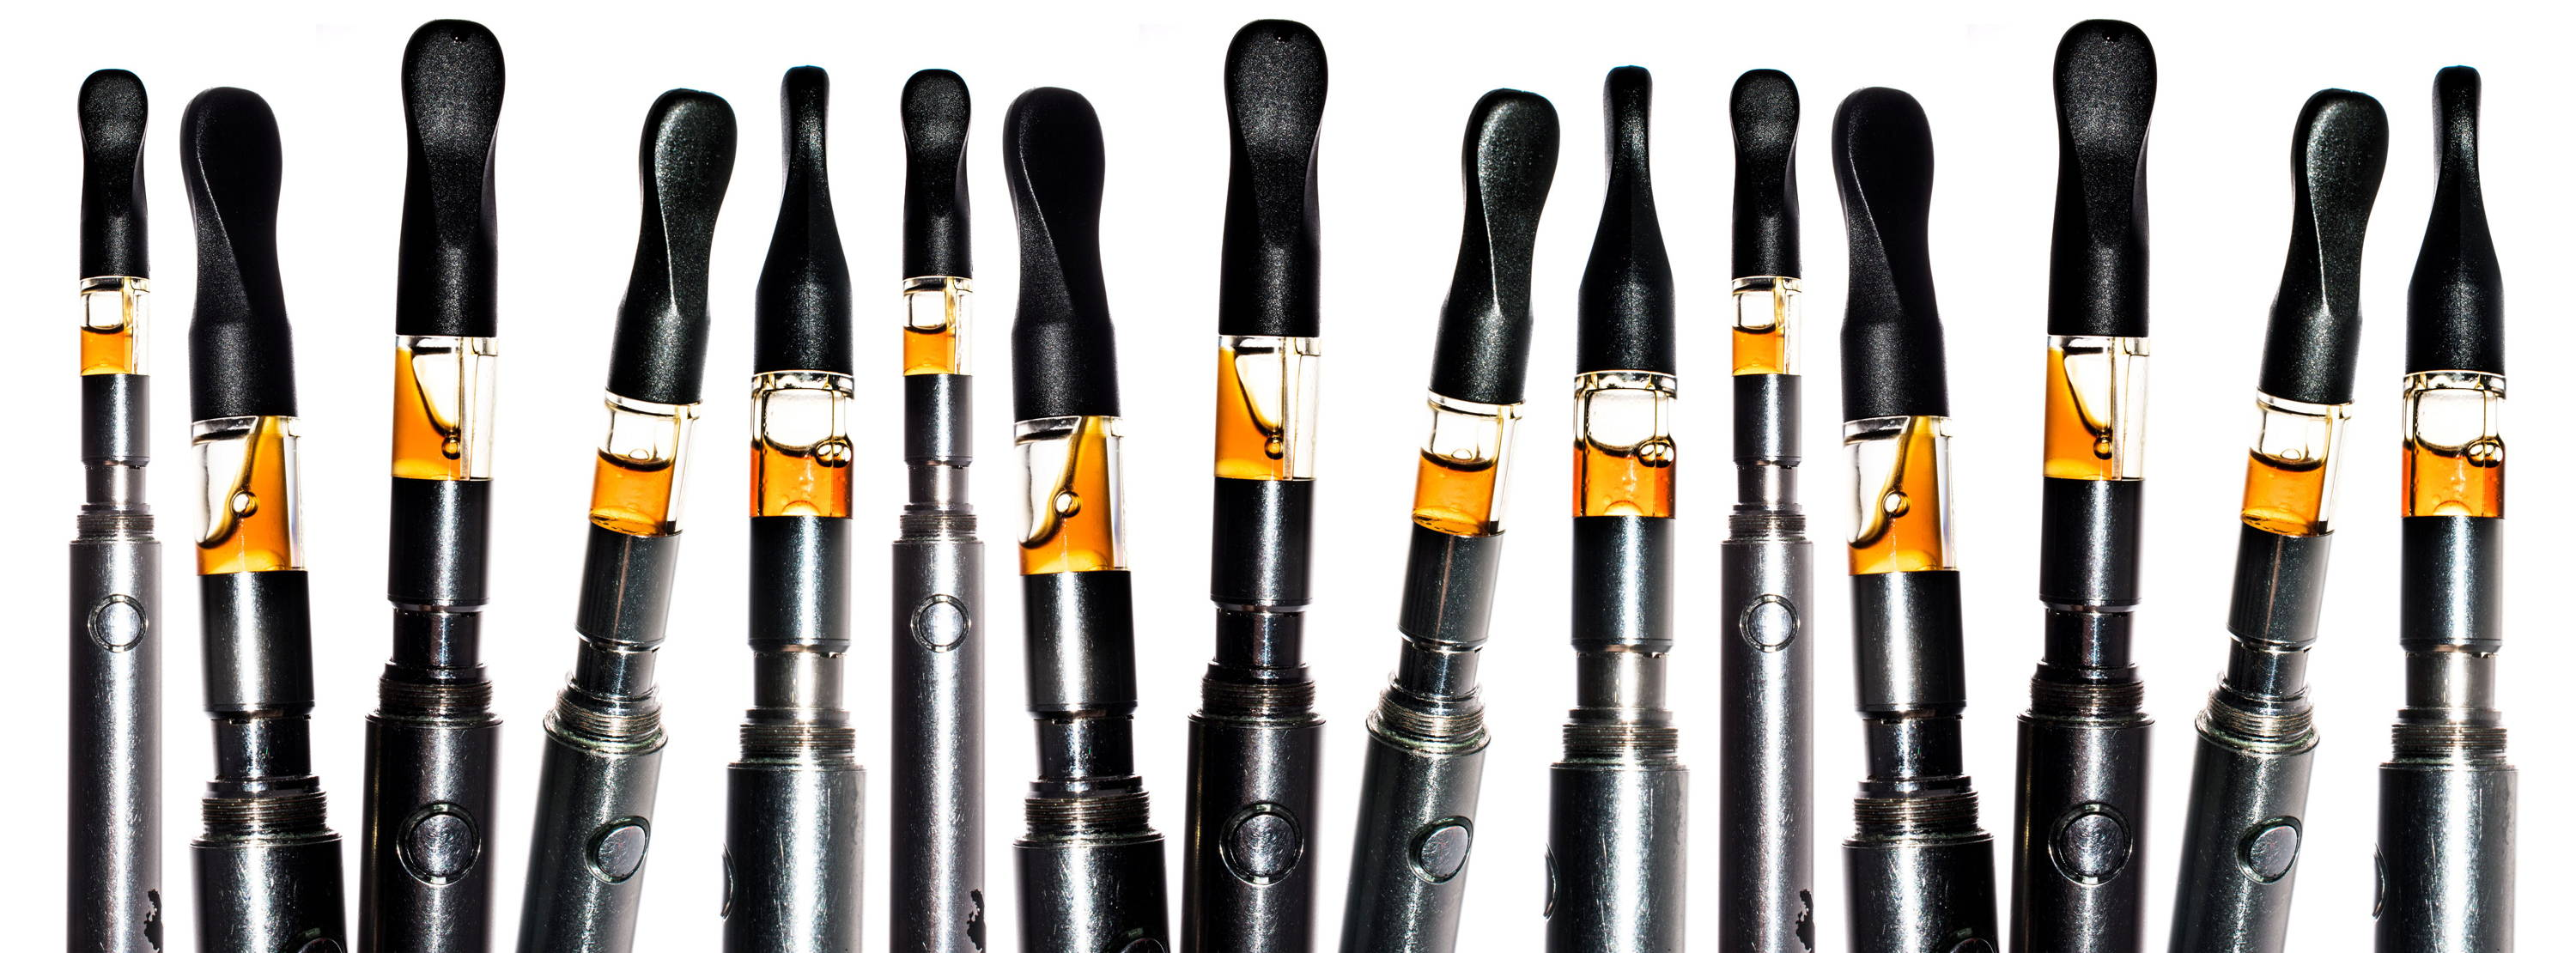 710 celebrates herbal concentrate vaporizers